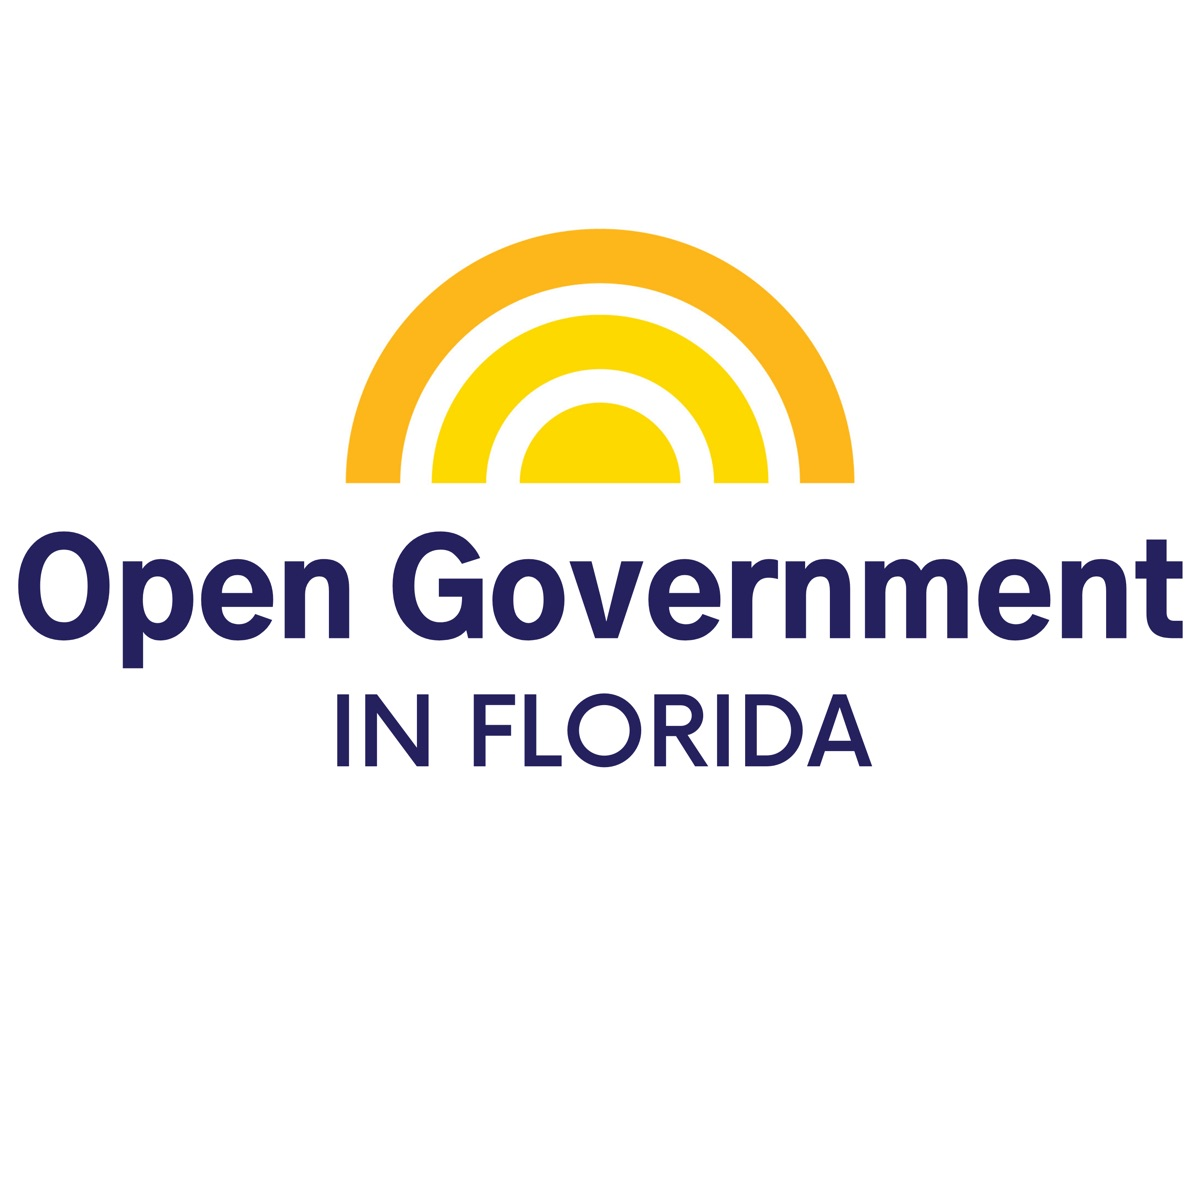 Open Government in Florida